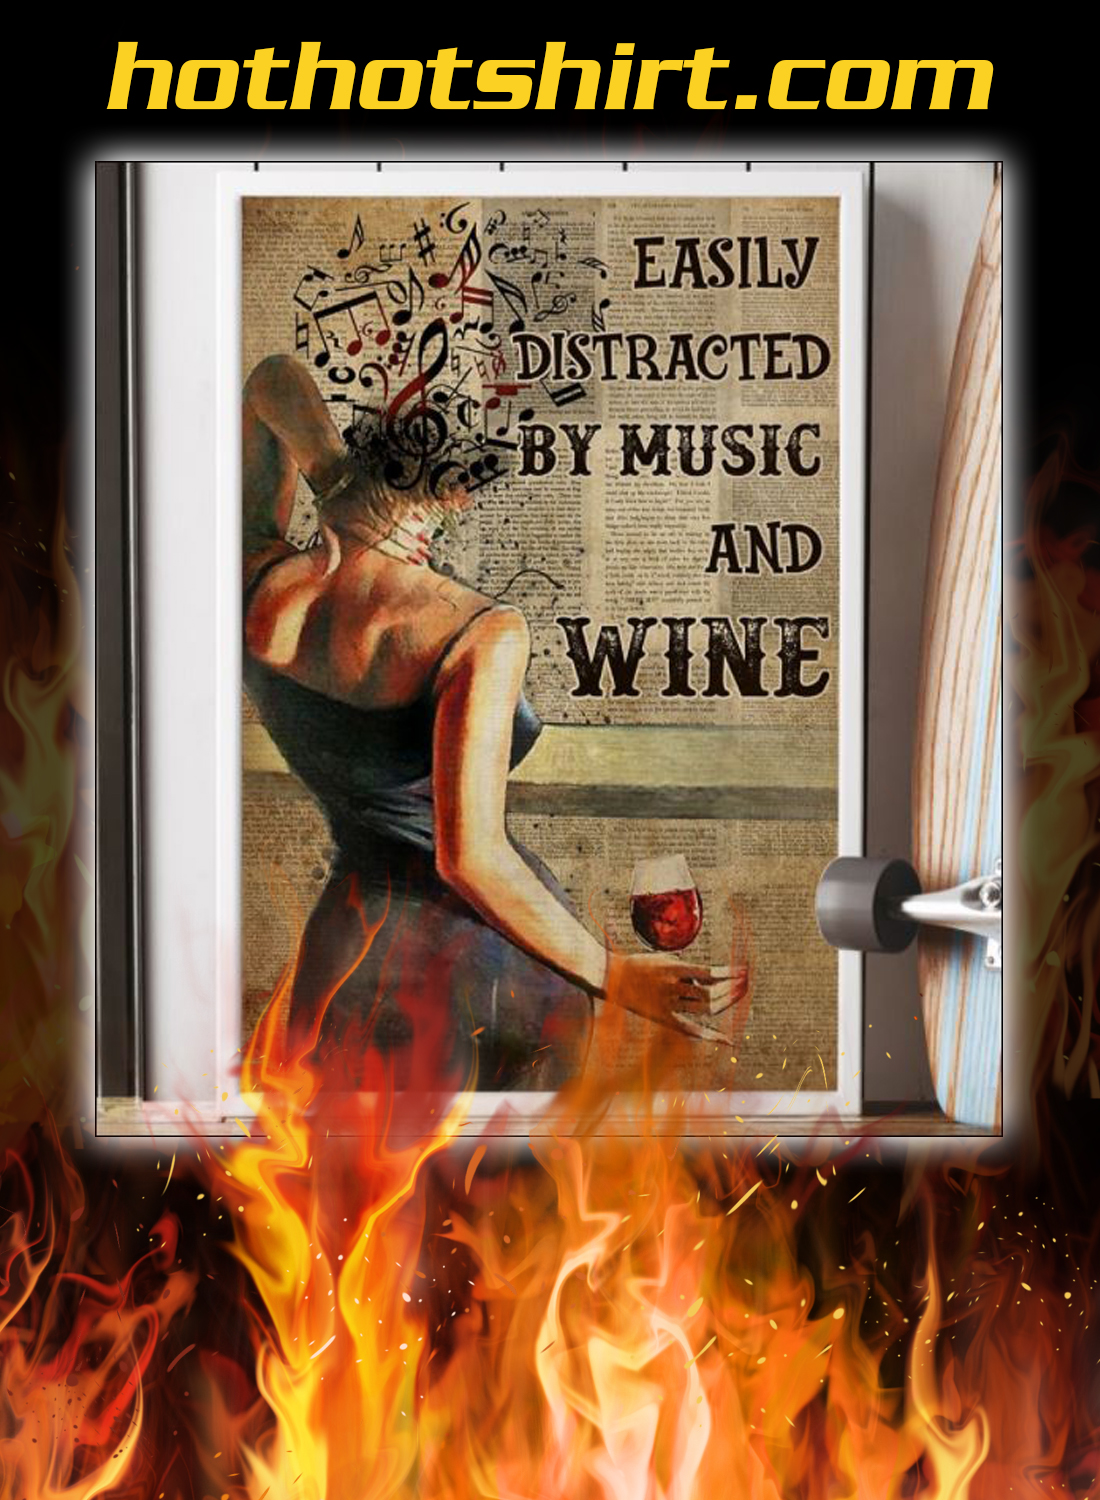 Girl easily distracted by music and wine poster 2